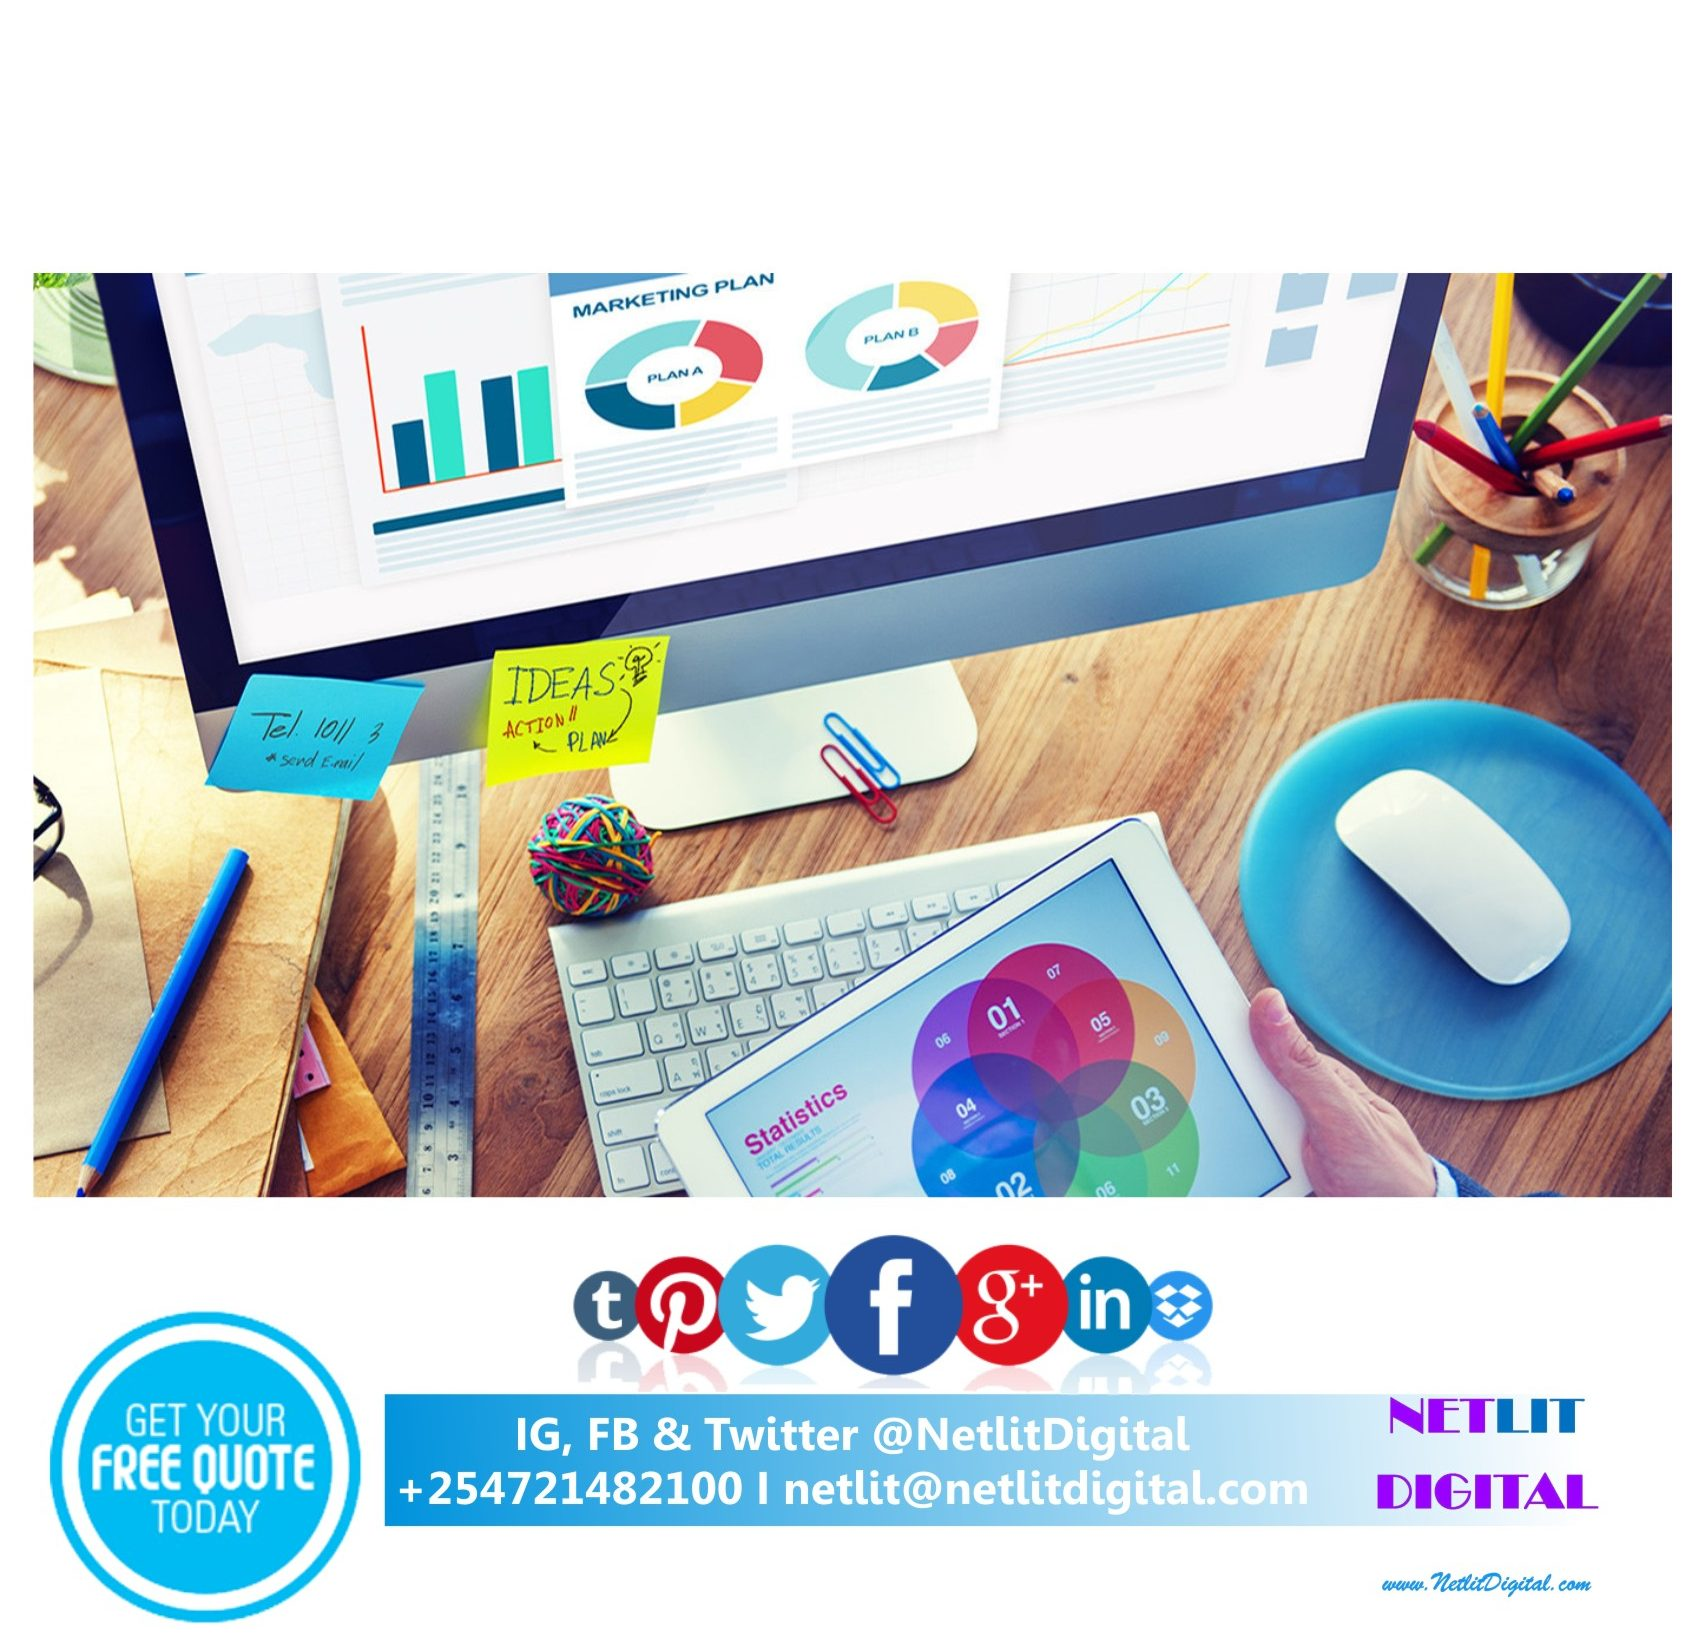 hNetlit Digital marketing web agency Kenyakl